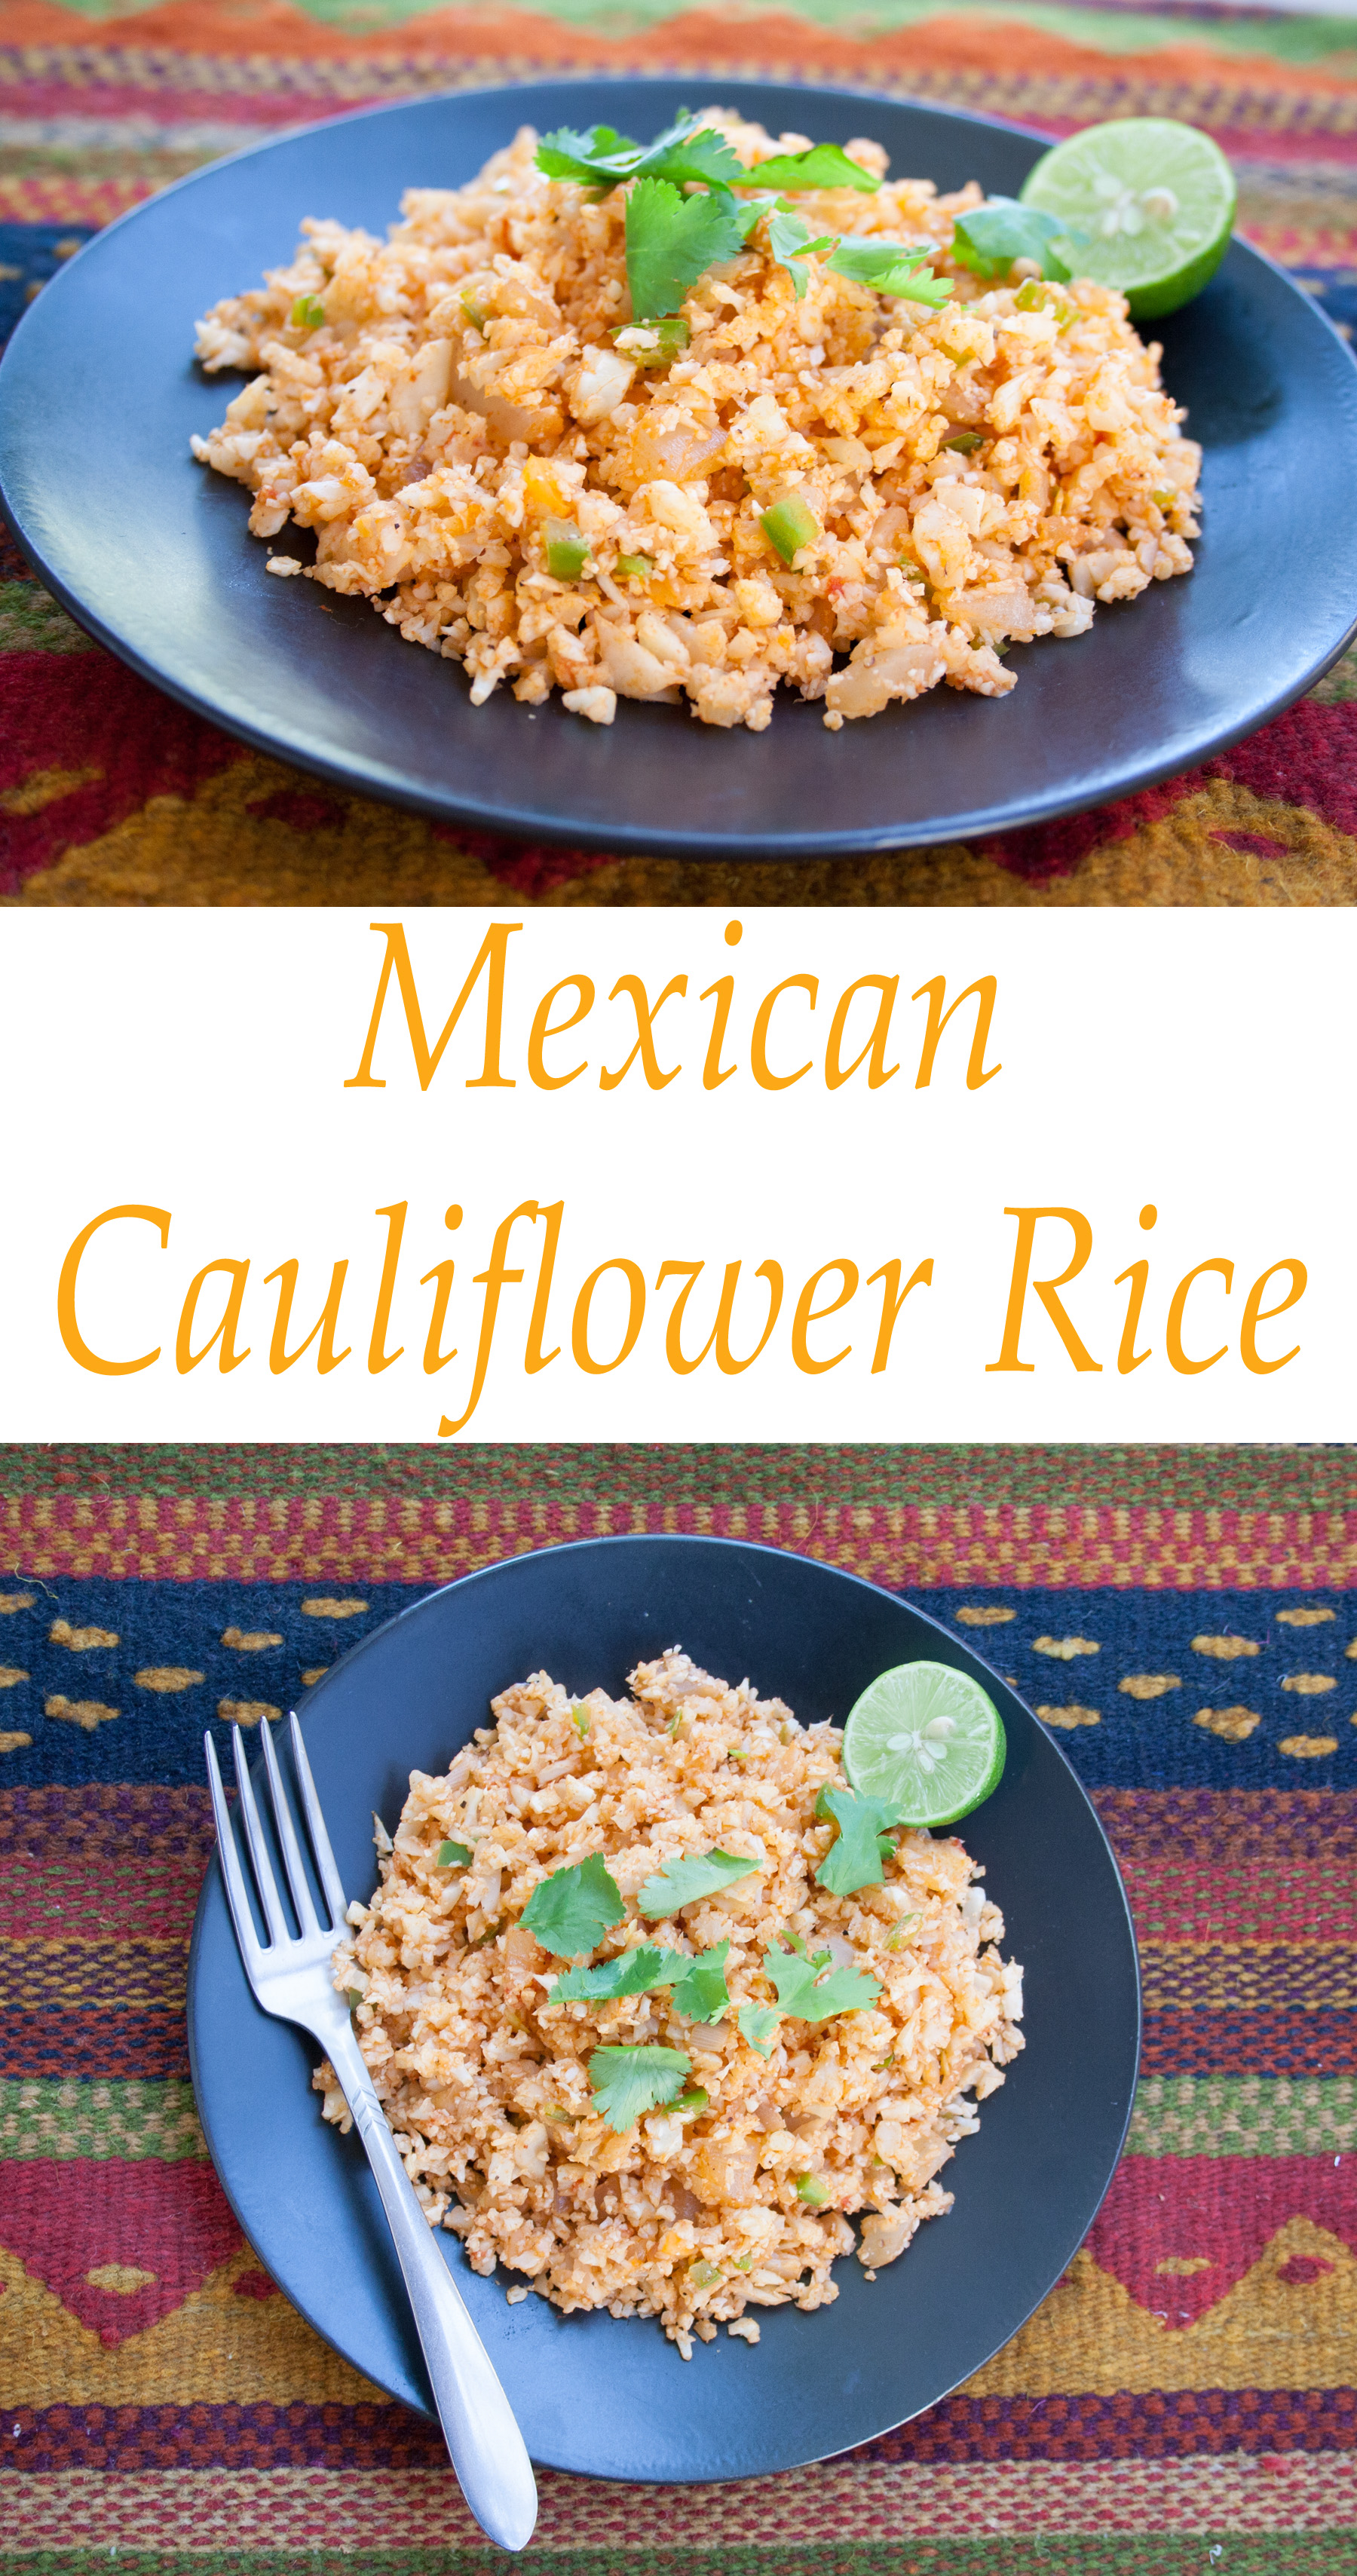 Mexican Cauliflower Rice collage photo with text.